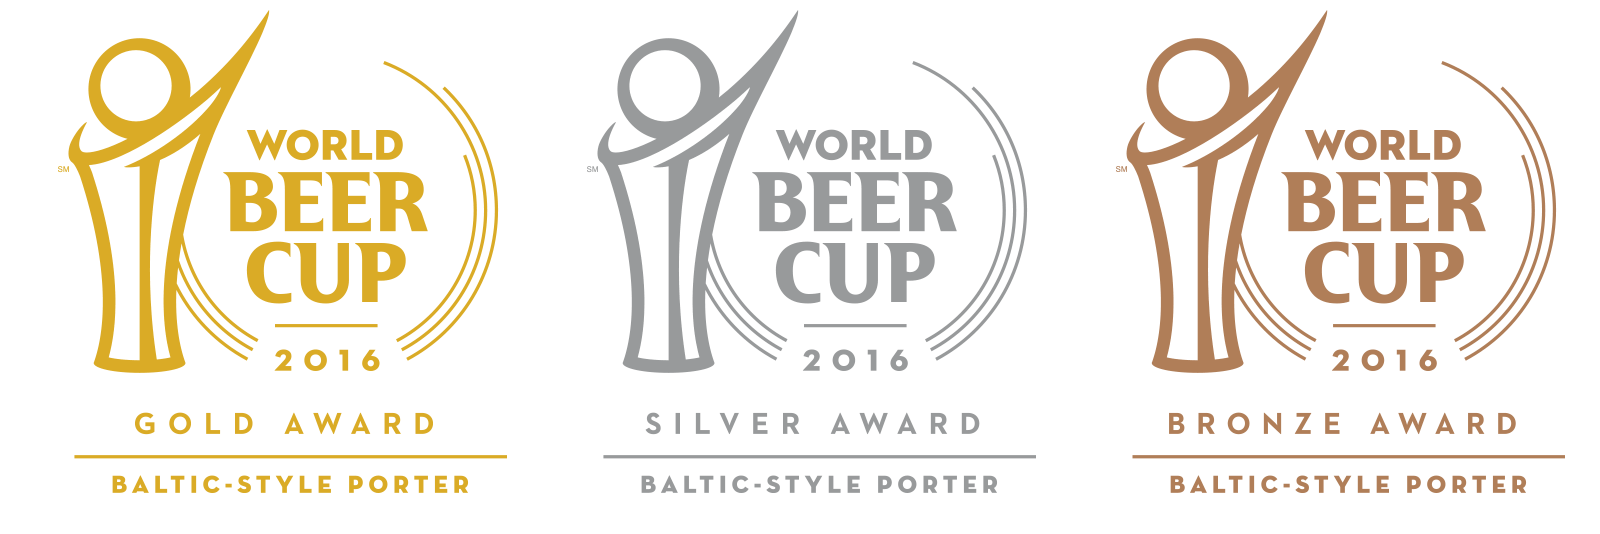 World Beer Cup Winners